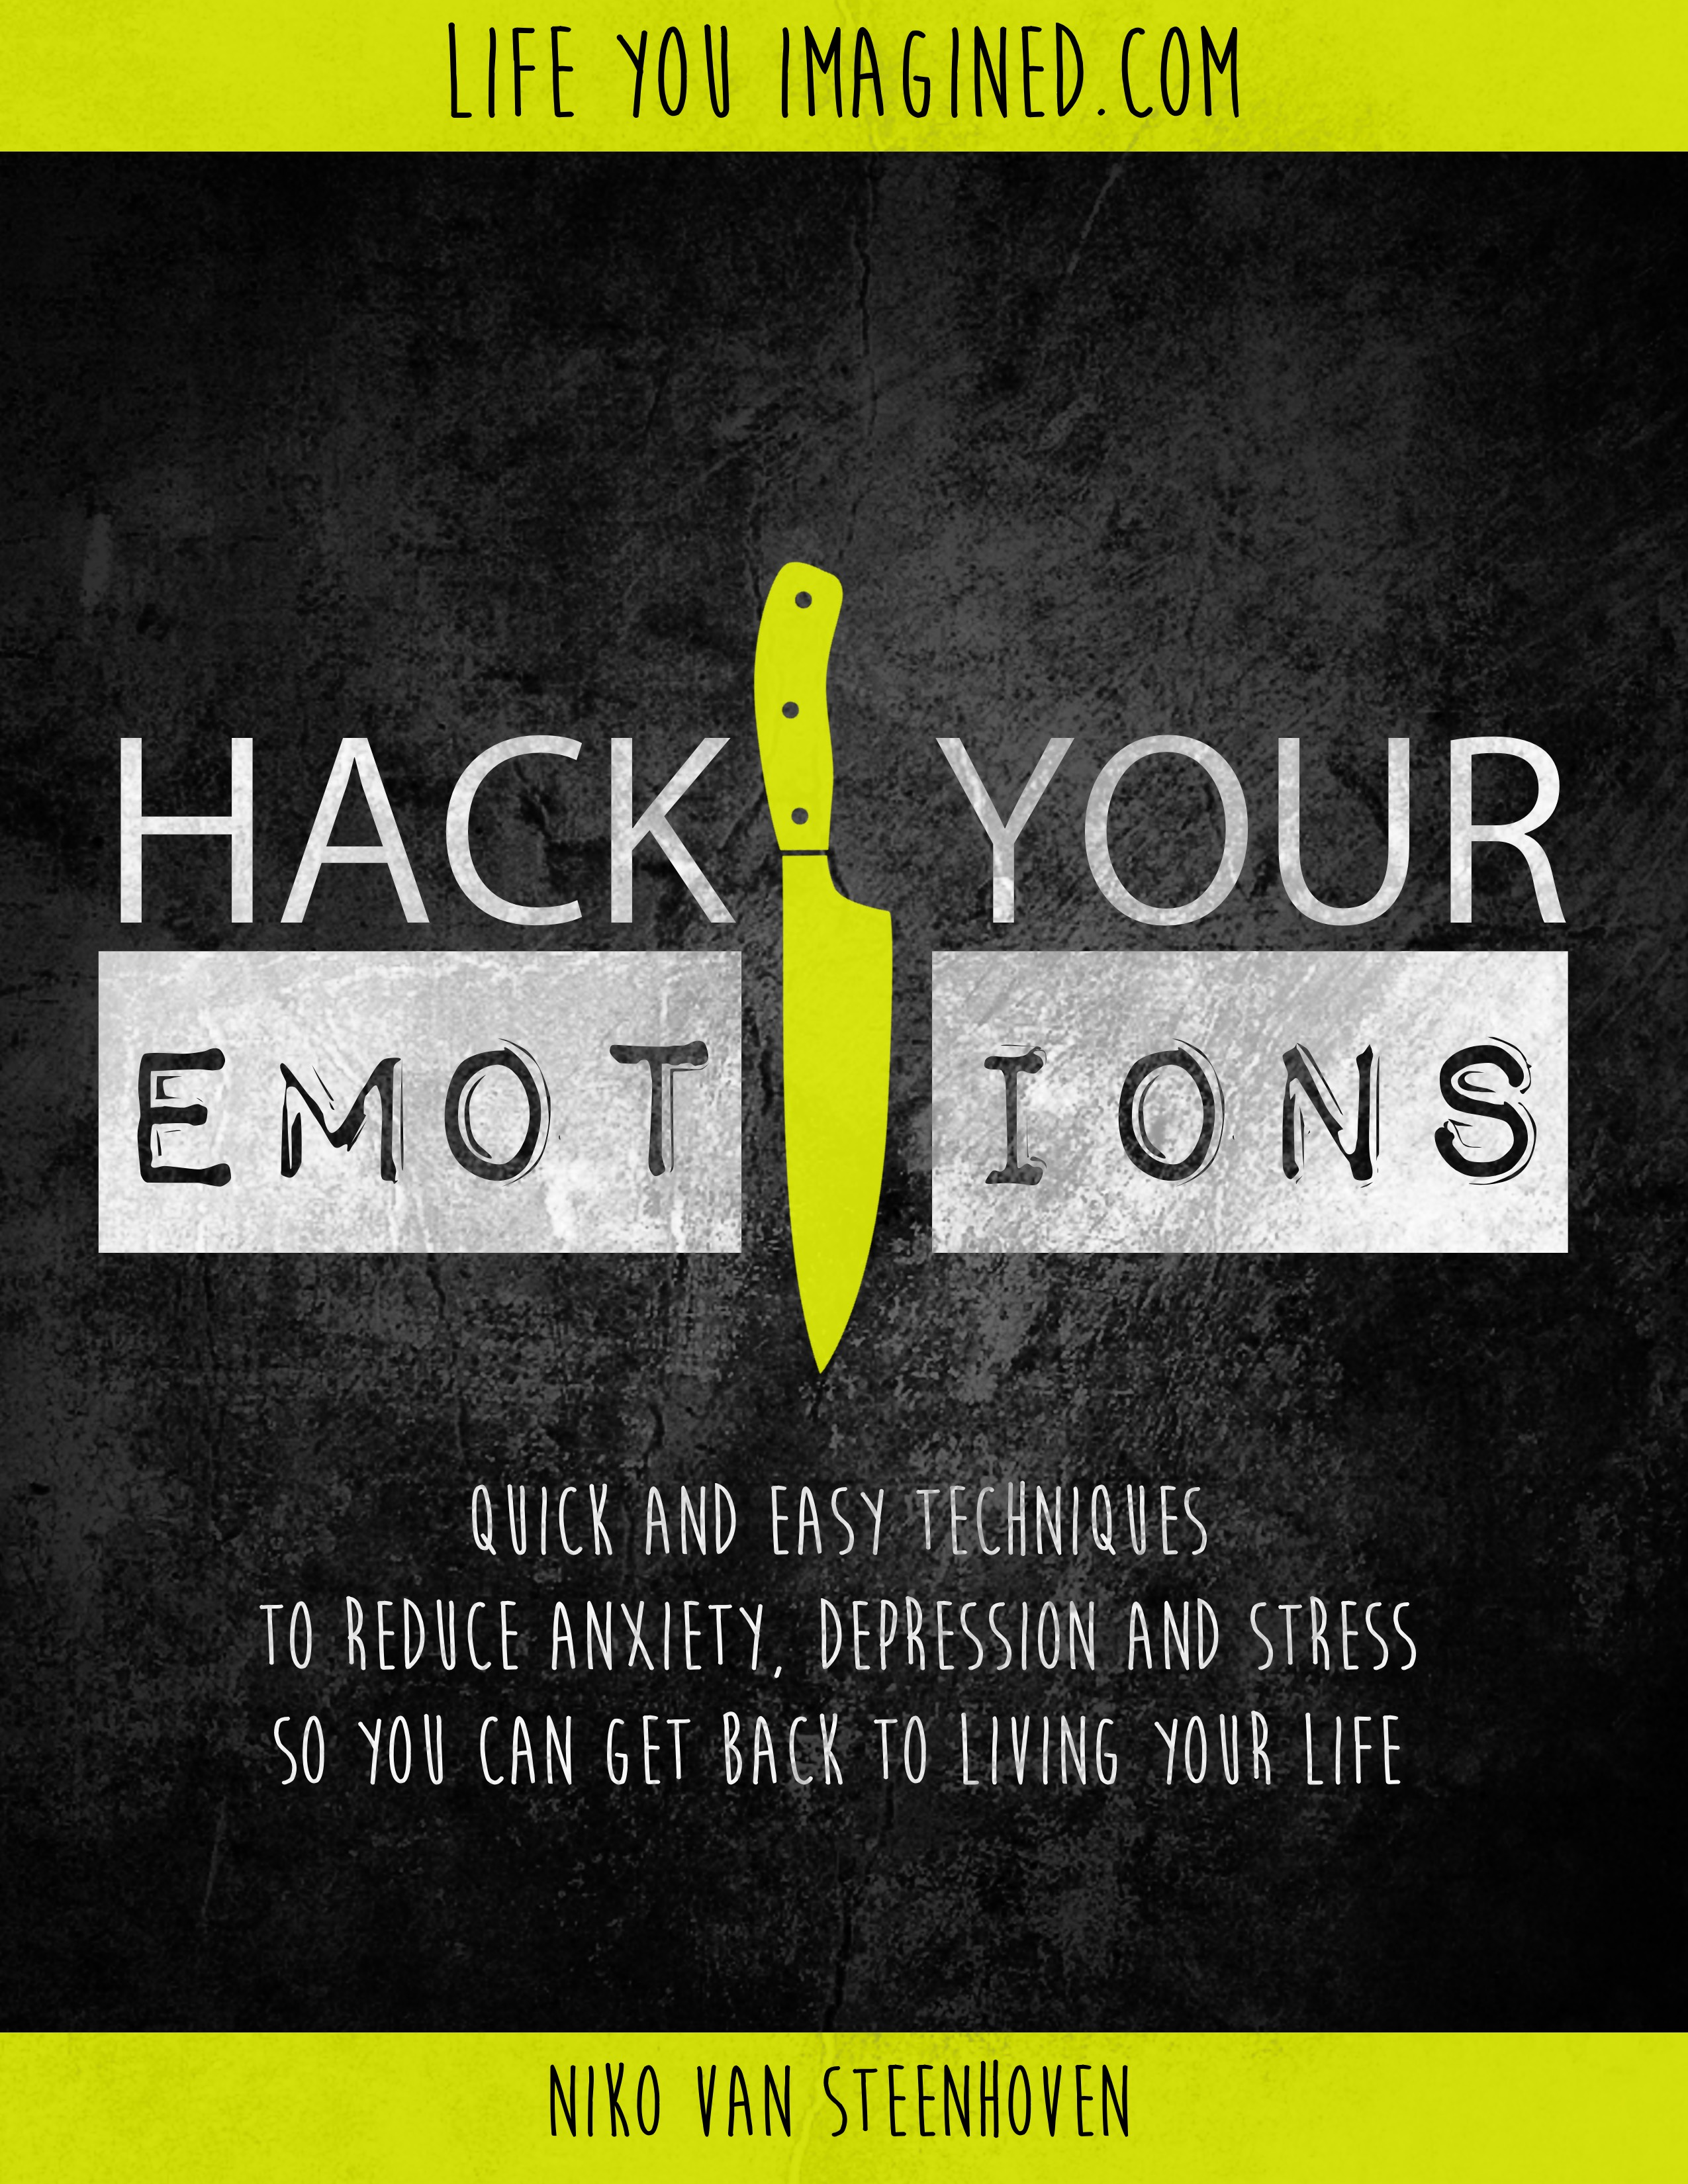 hack your emotions quick